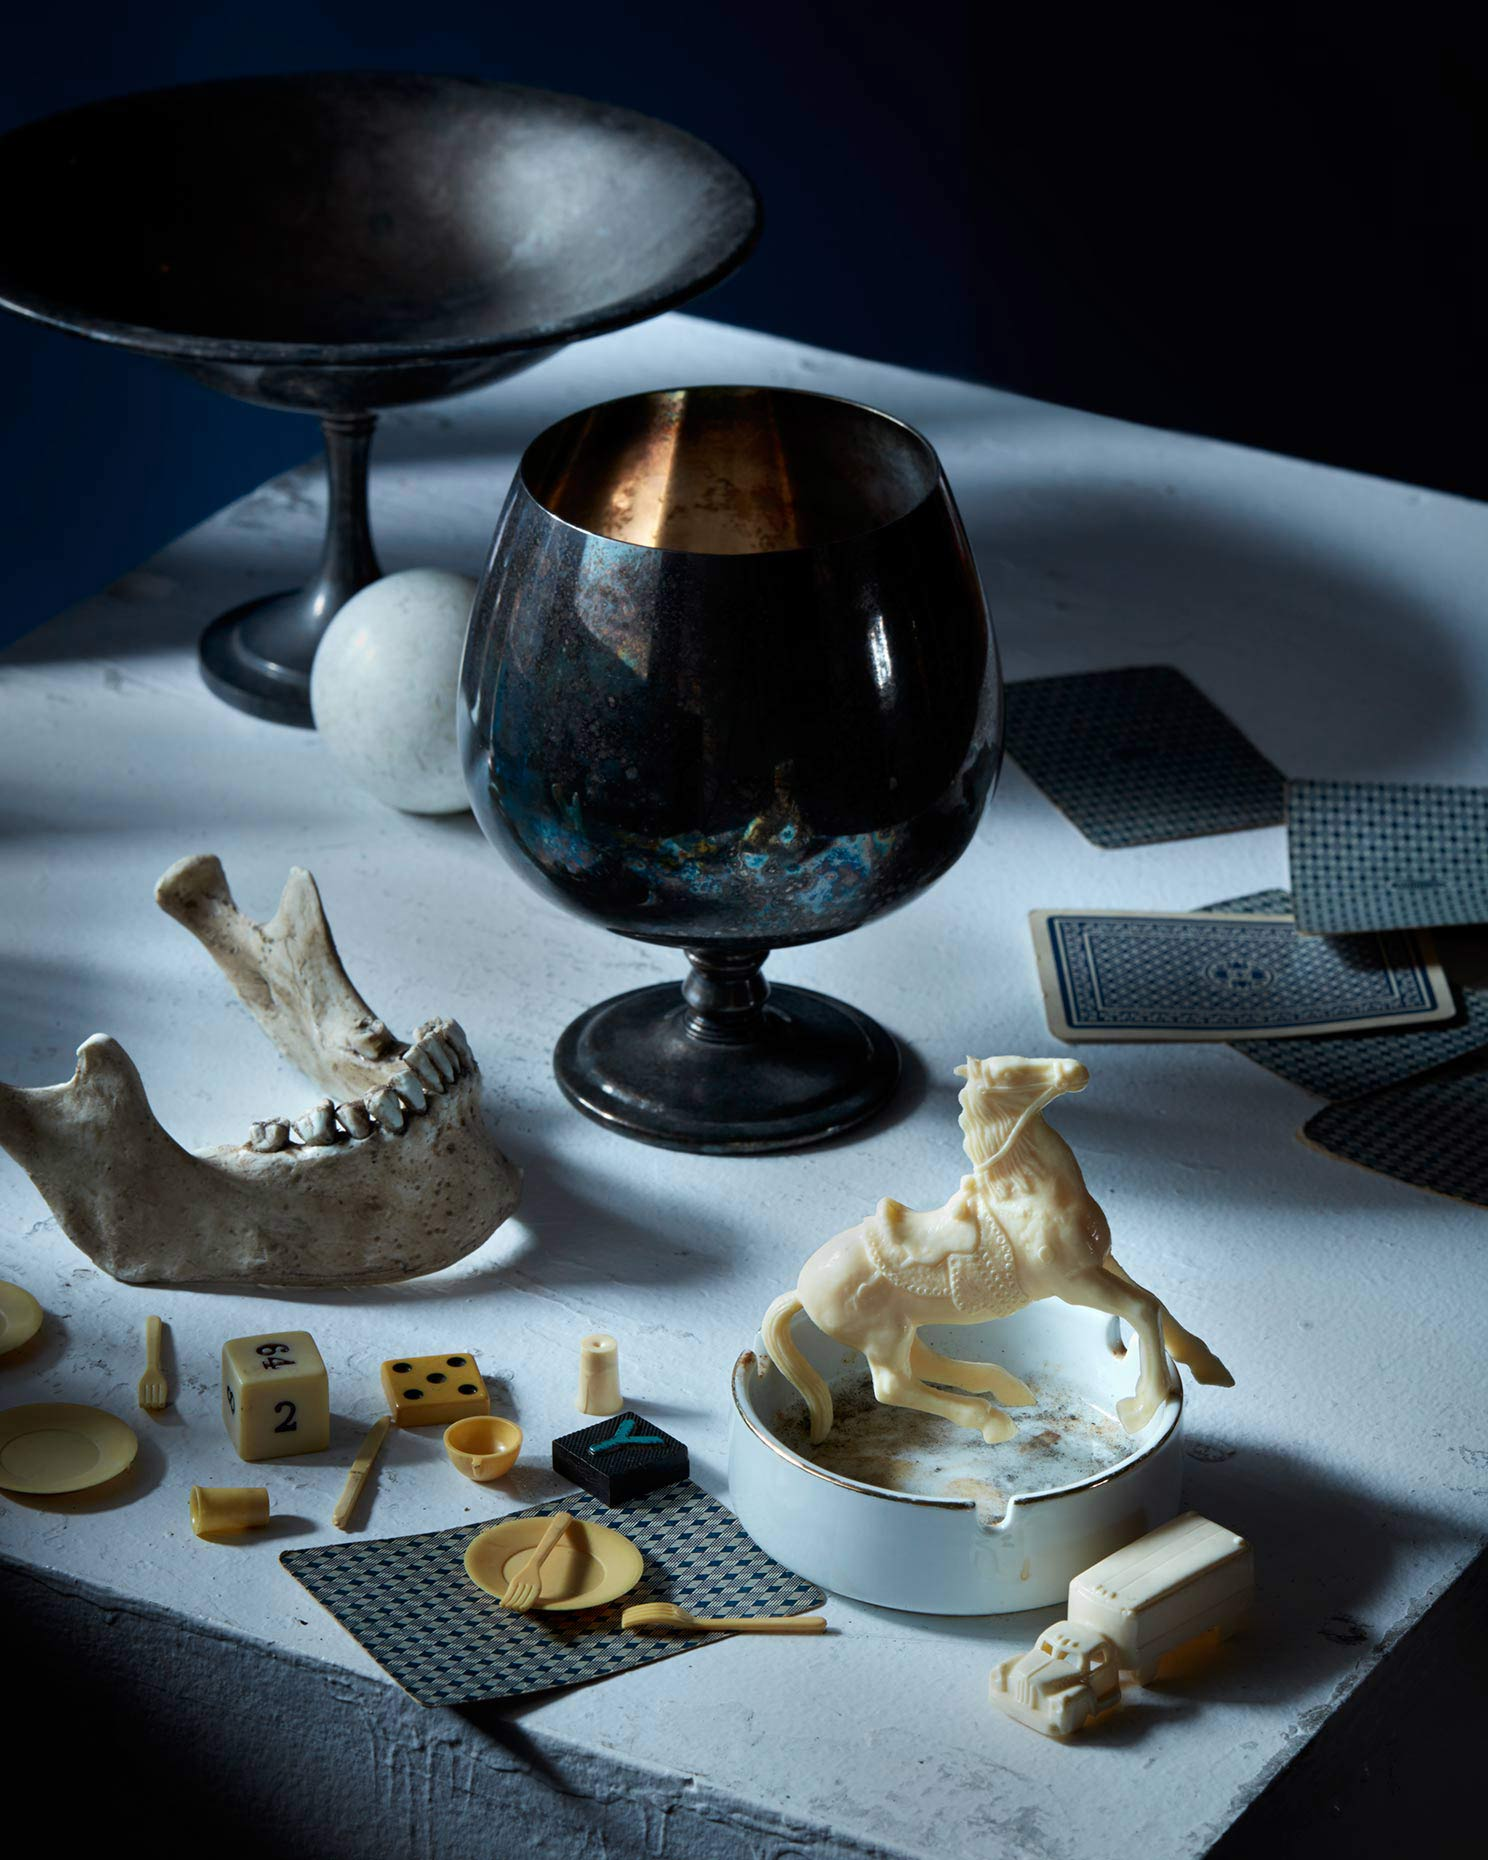 Artistic dark still life photograph of various vintage objects.